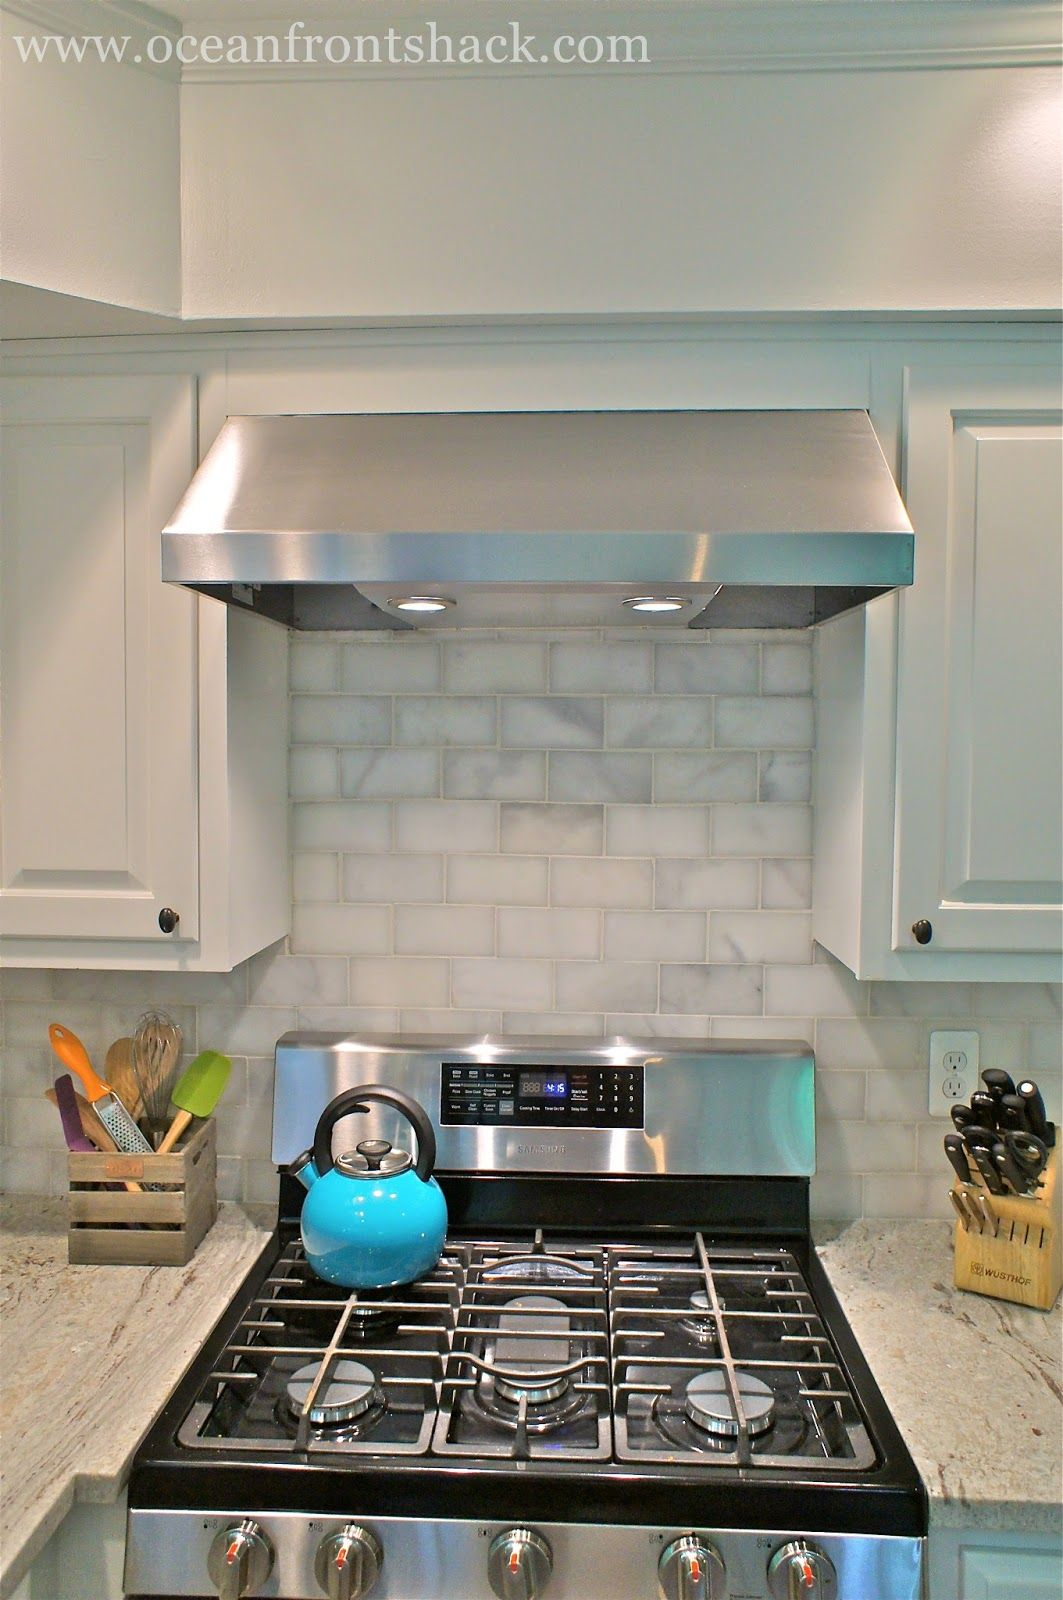 Replacing Kitchen Cabinets On A Budget Replacing Microwave With Range Hood Replace A Built In